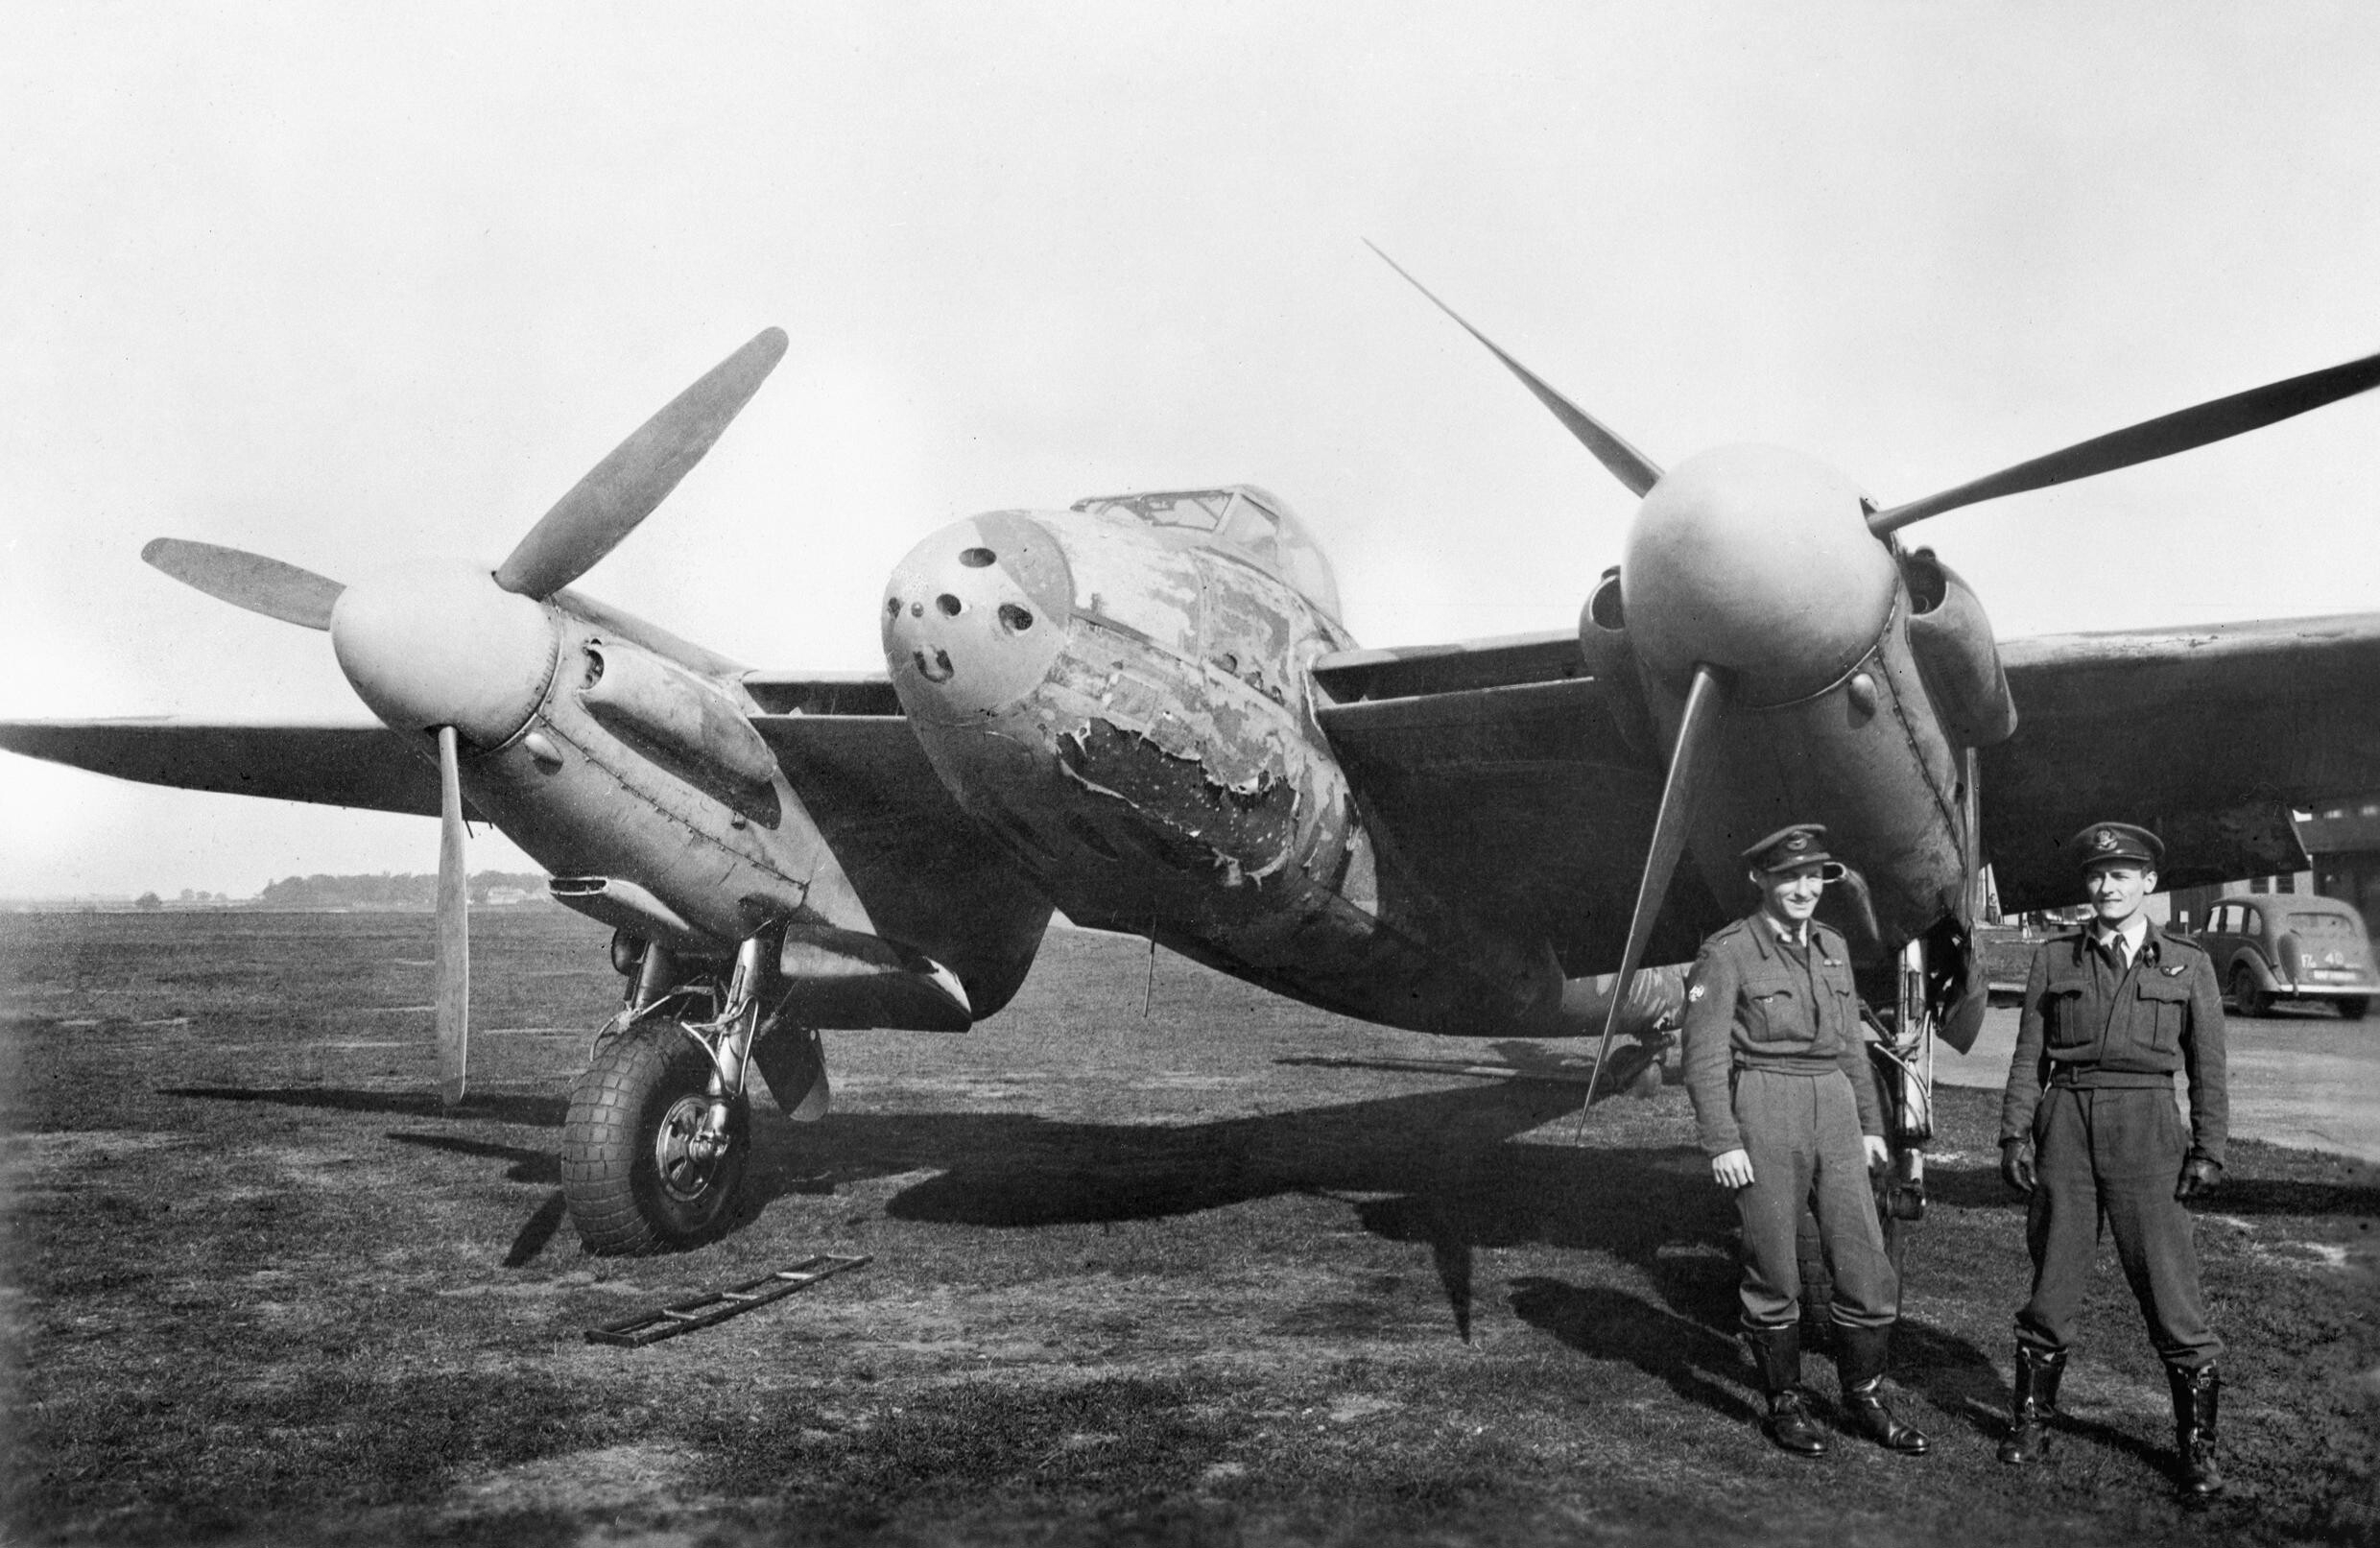 Flight Lieutenant M Cybulski (left) and Flying Officer H Ladbrook of No. 410 Squadron RCAF, with their damaged Mosquito Mk II at Coleby Grange, 27 September 1943. Their aircraft was severely charred by an explo CE106